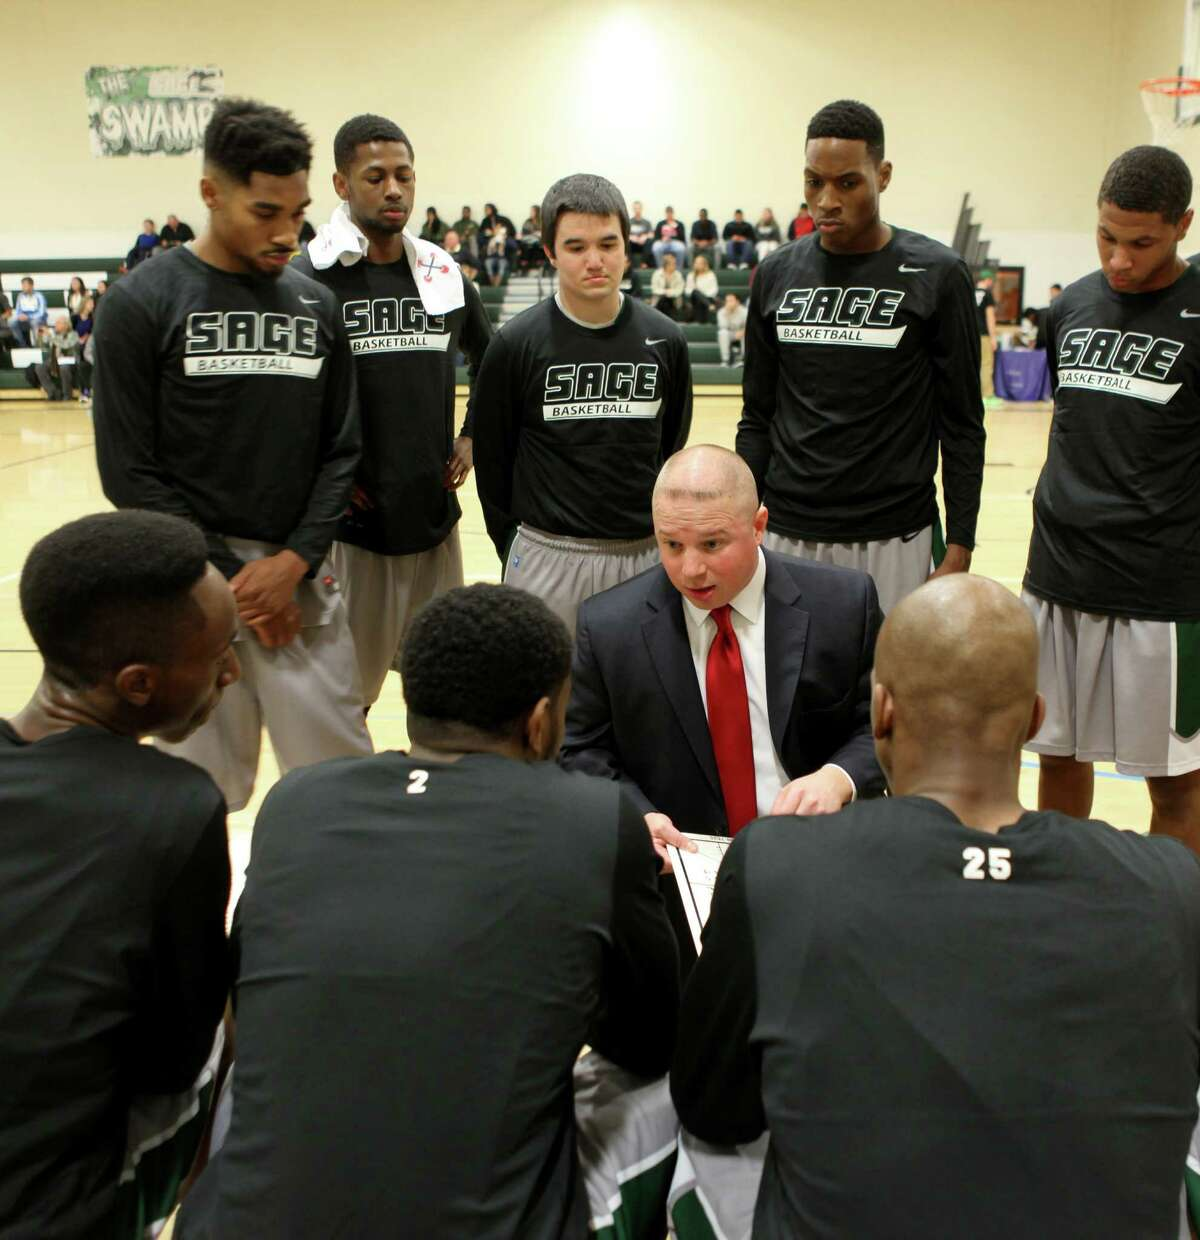 Sage men's basketball coach Brian Barnes talks to his team. (Courtesy The Sage Colleges)